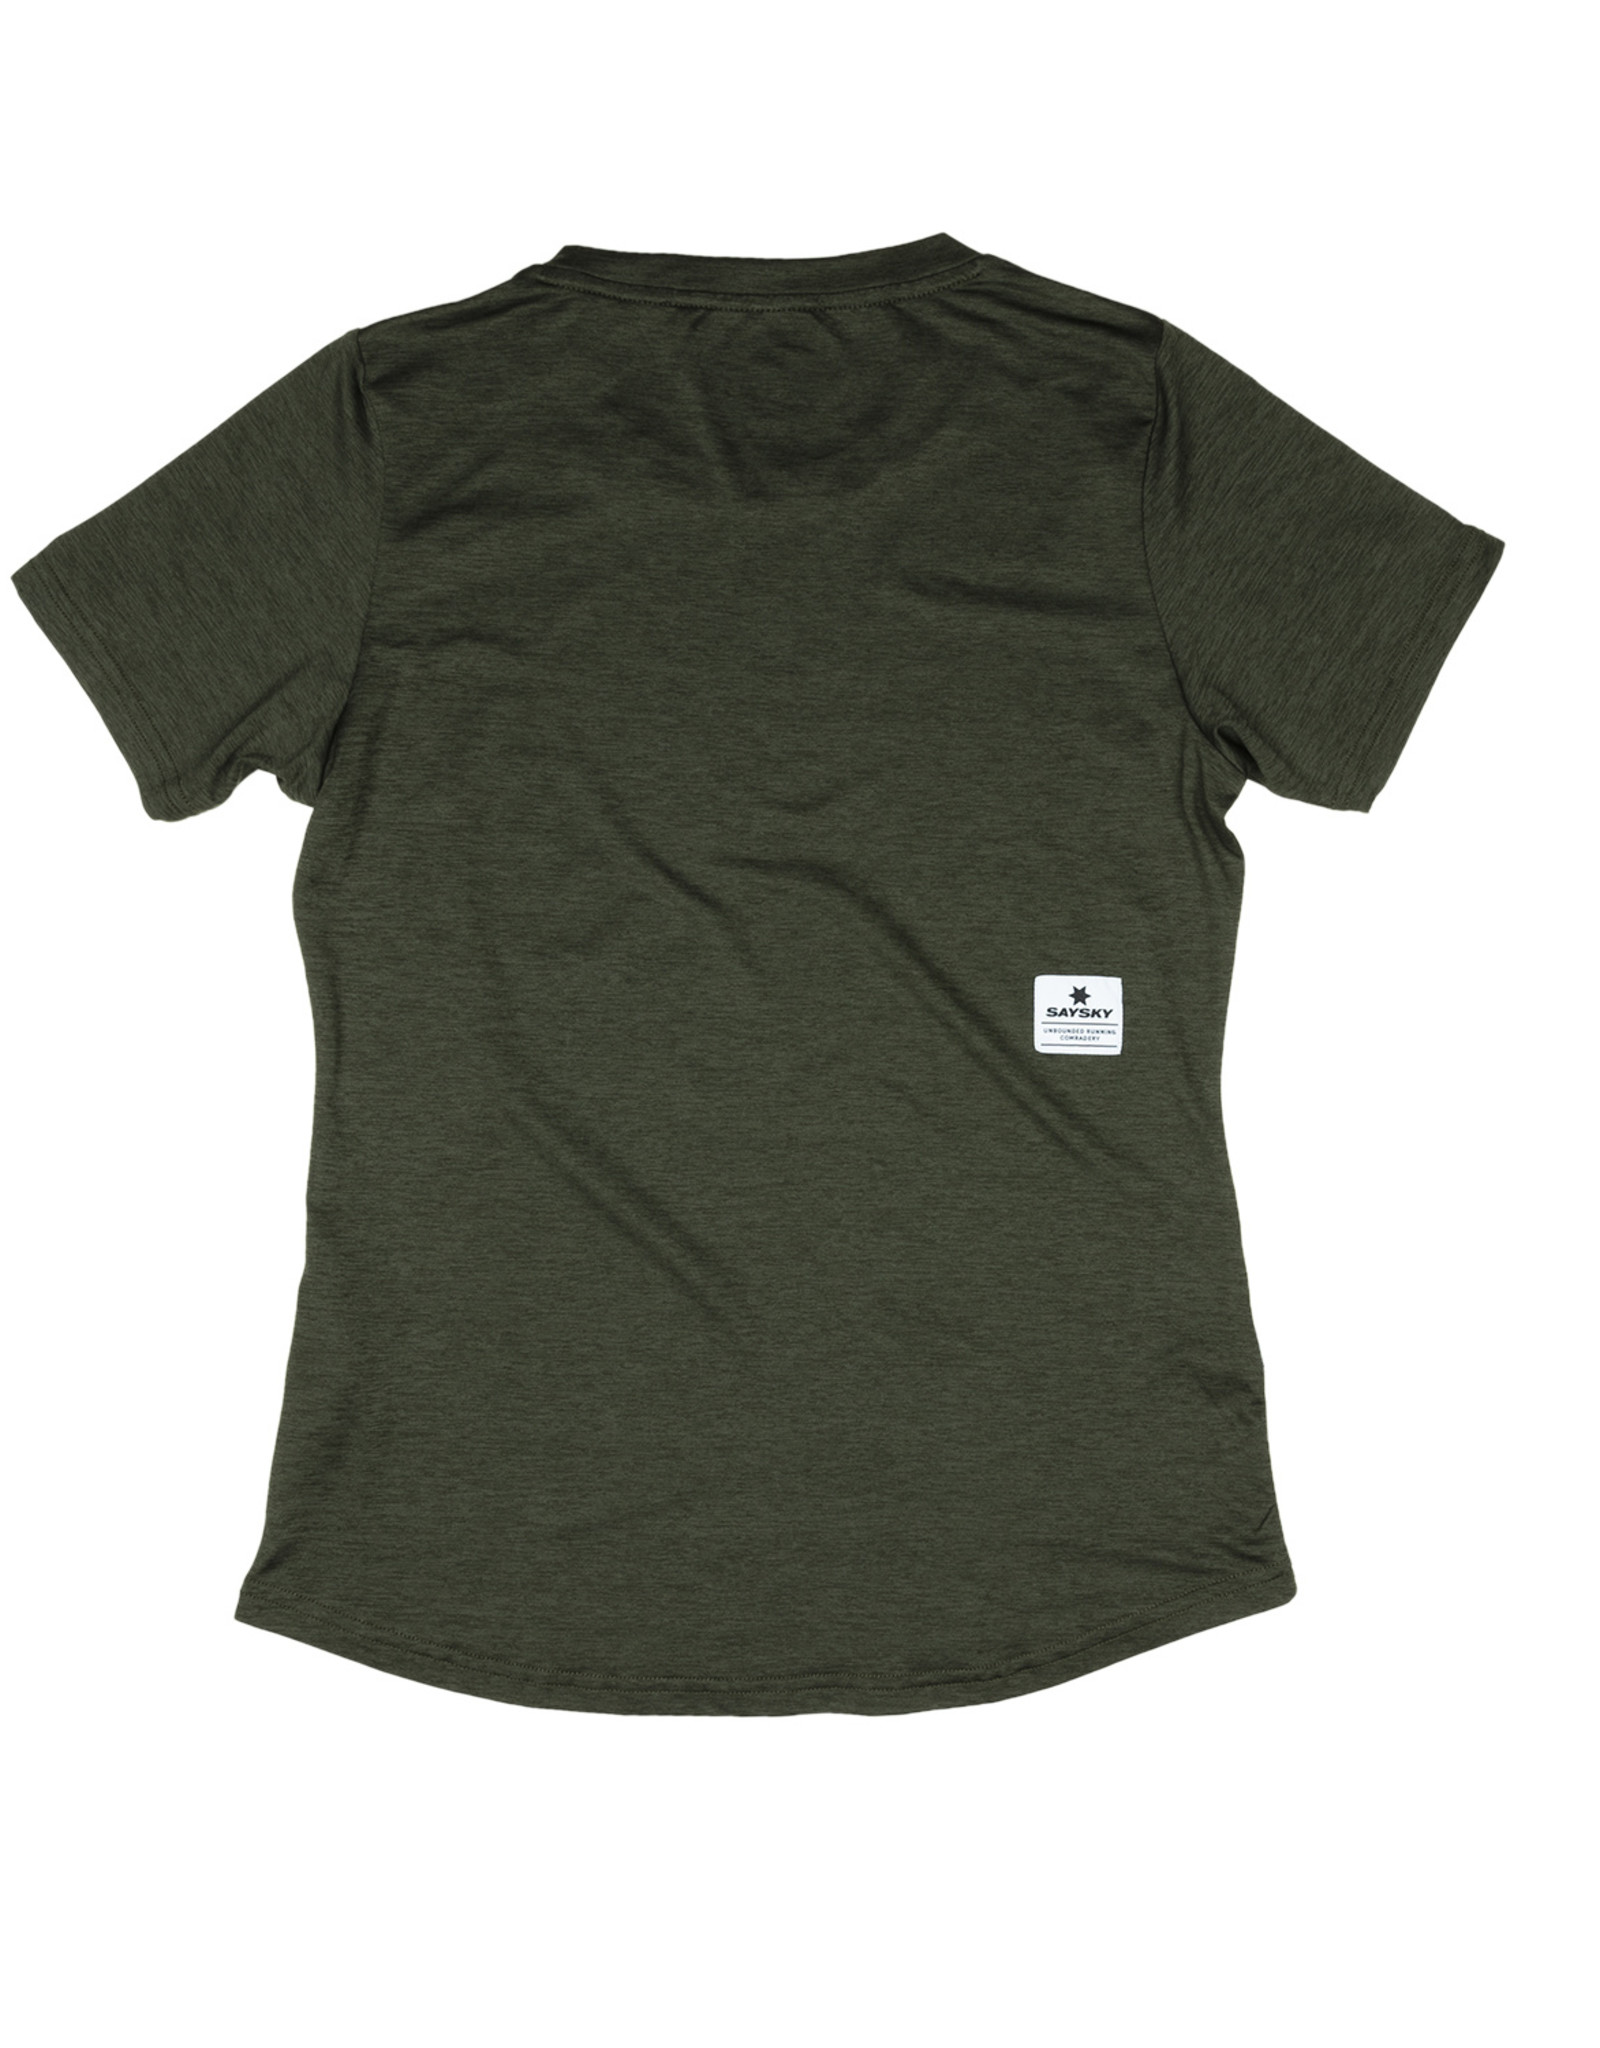 Saysky Earned Pace Tee dames (ref EGRSS07)